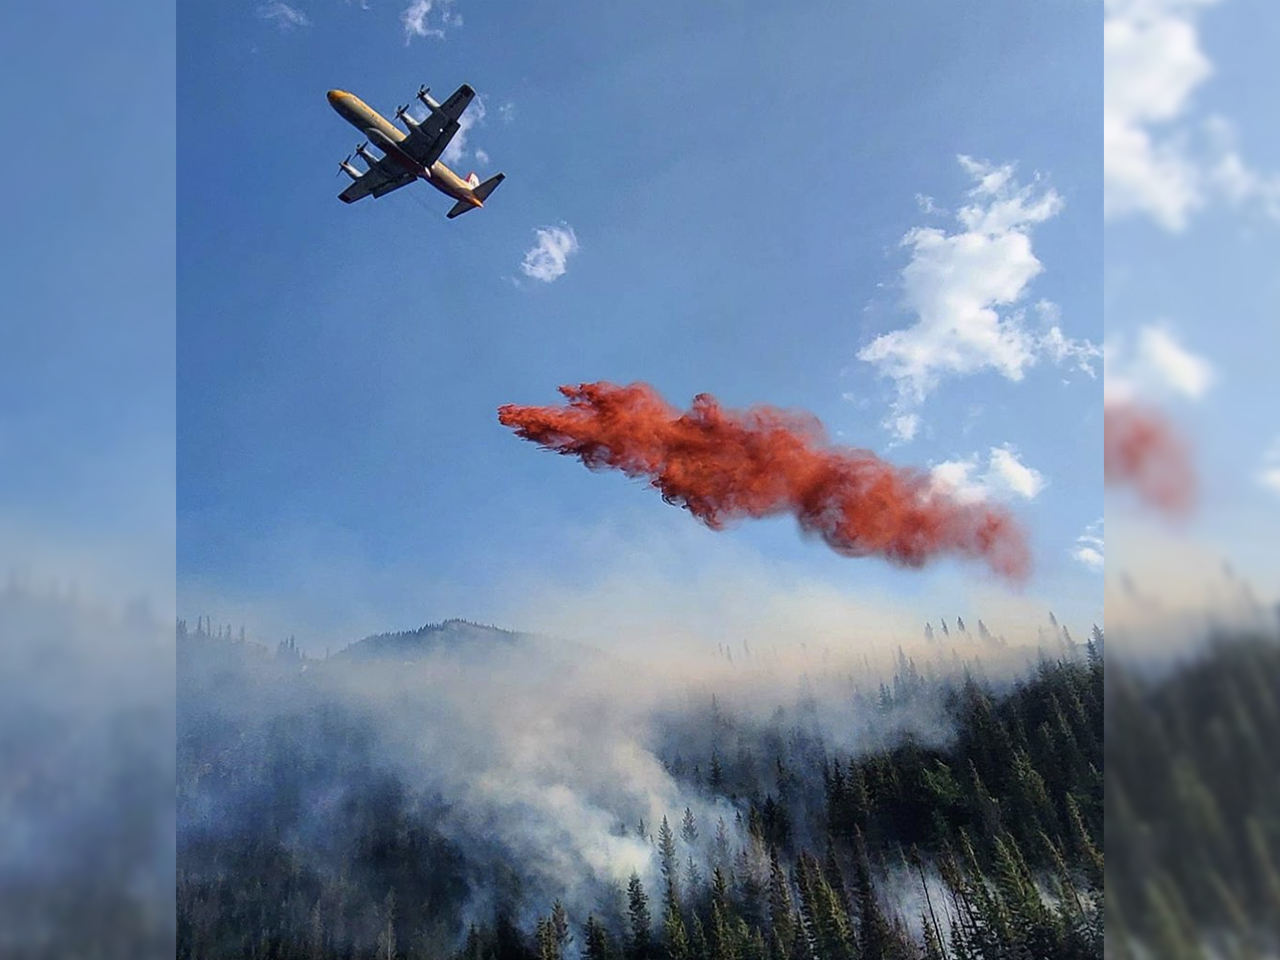 A photo of a plane dropping a stream of red fire retardant onto a forest